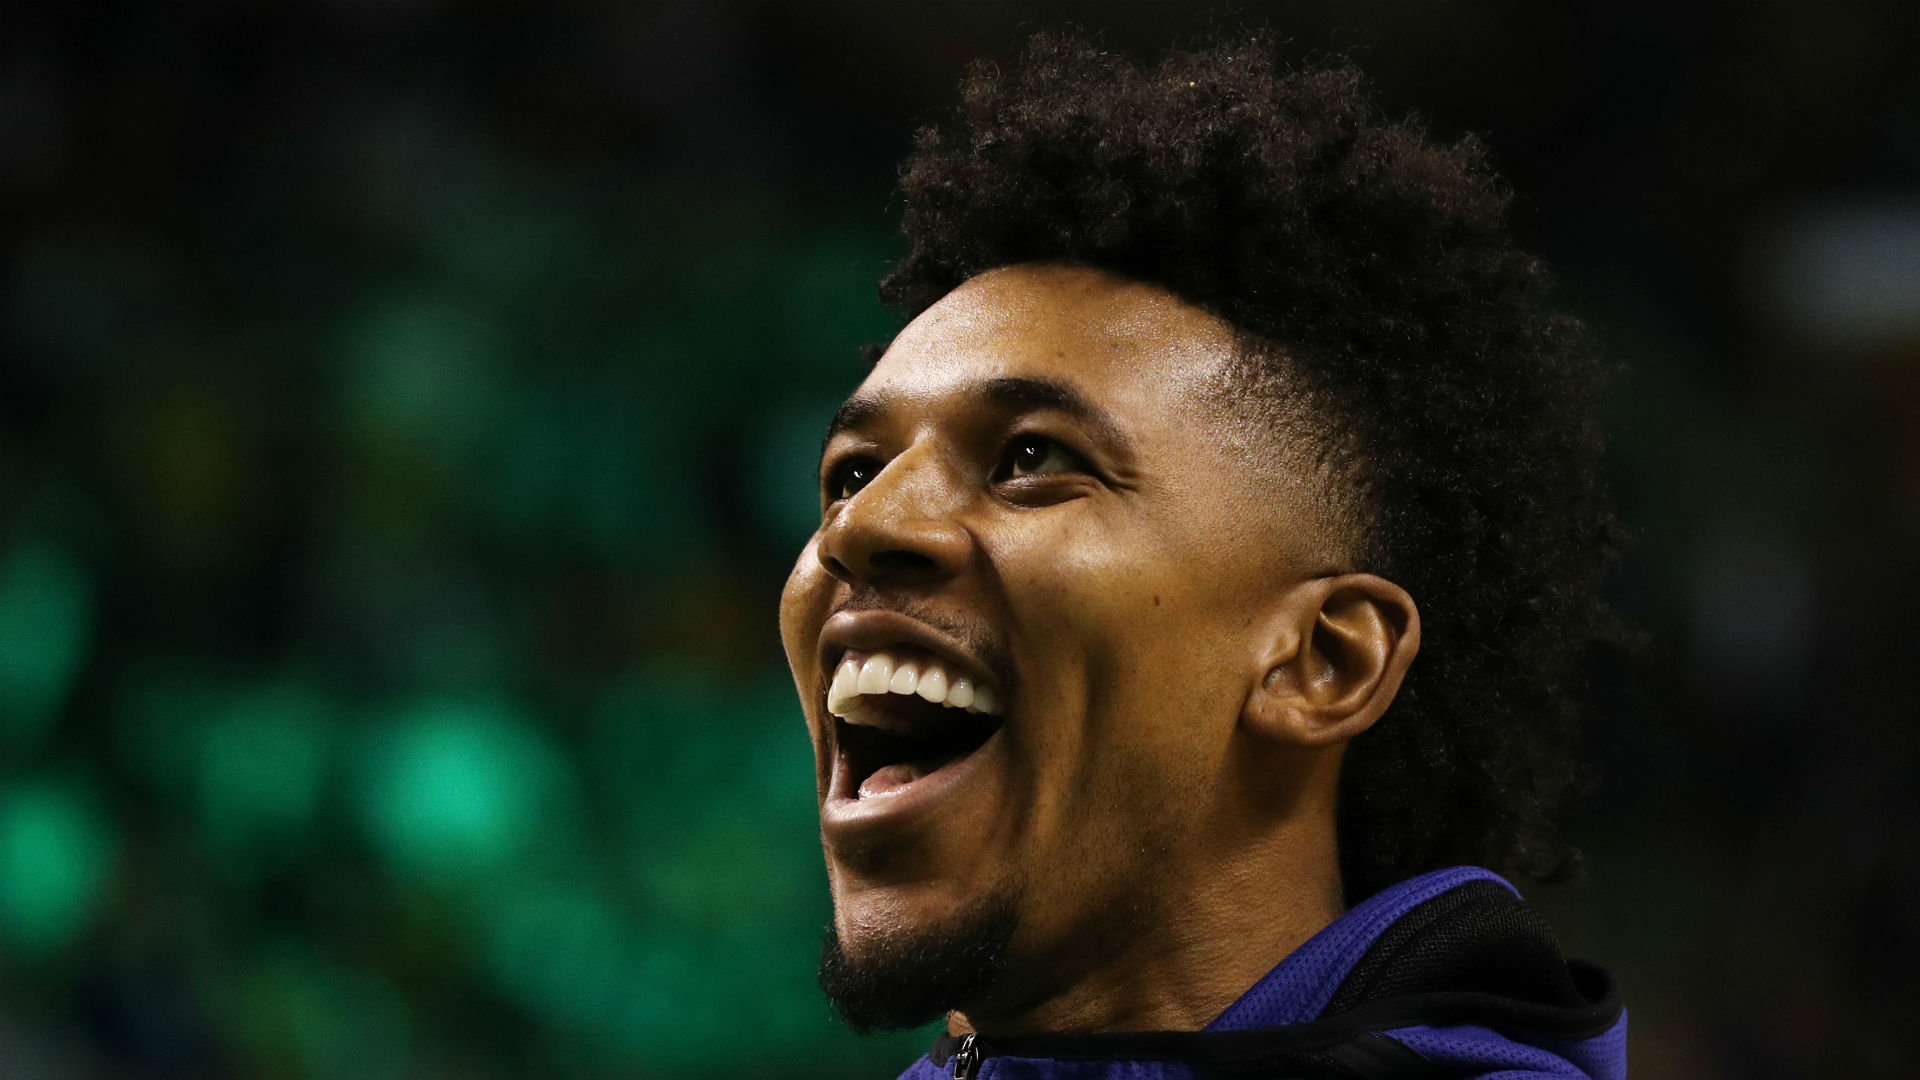 Warriors' Nick Young says he was 'just joking' about legalizing cocaine